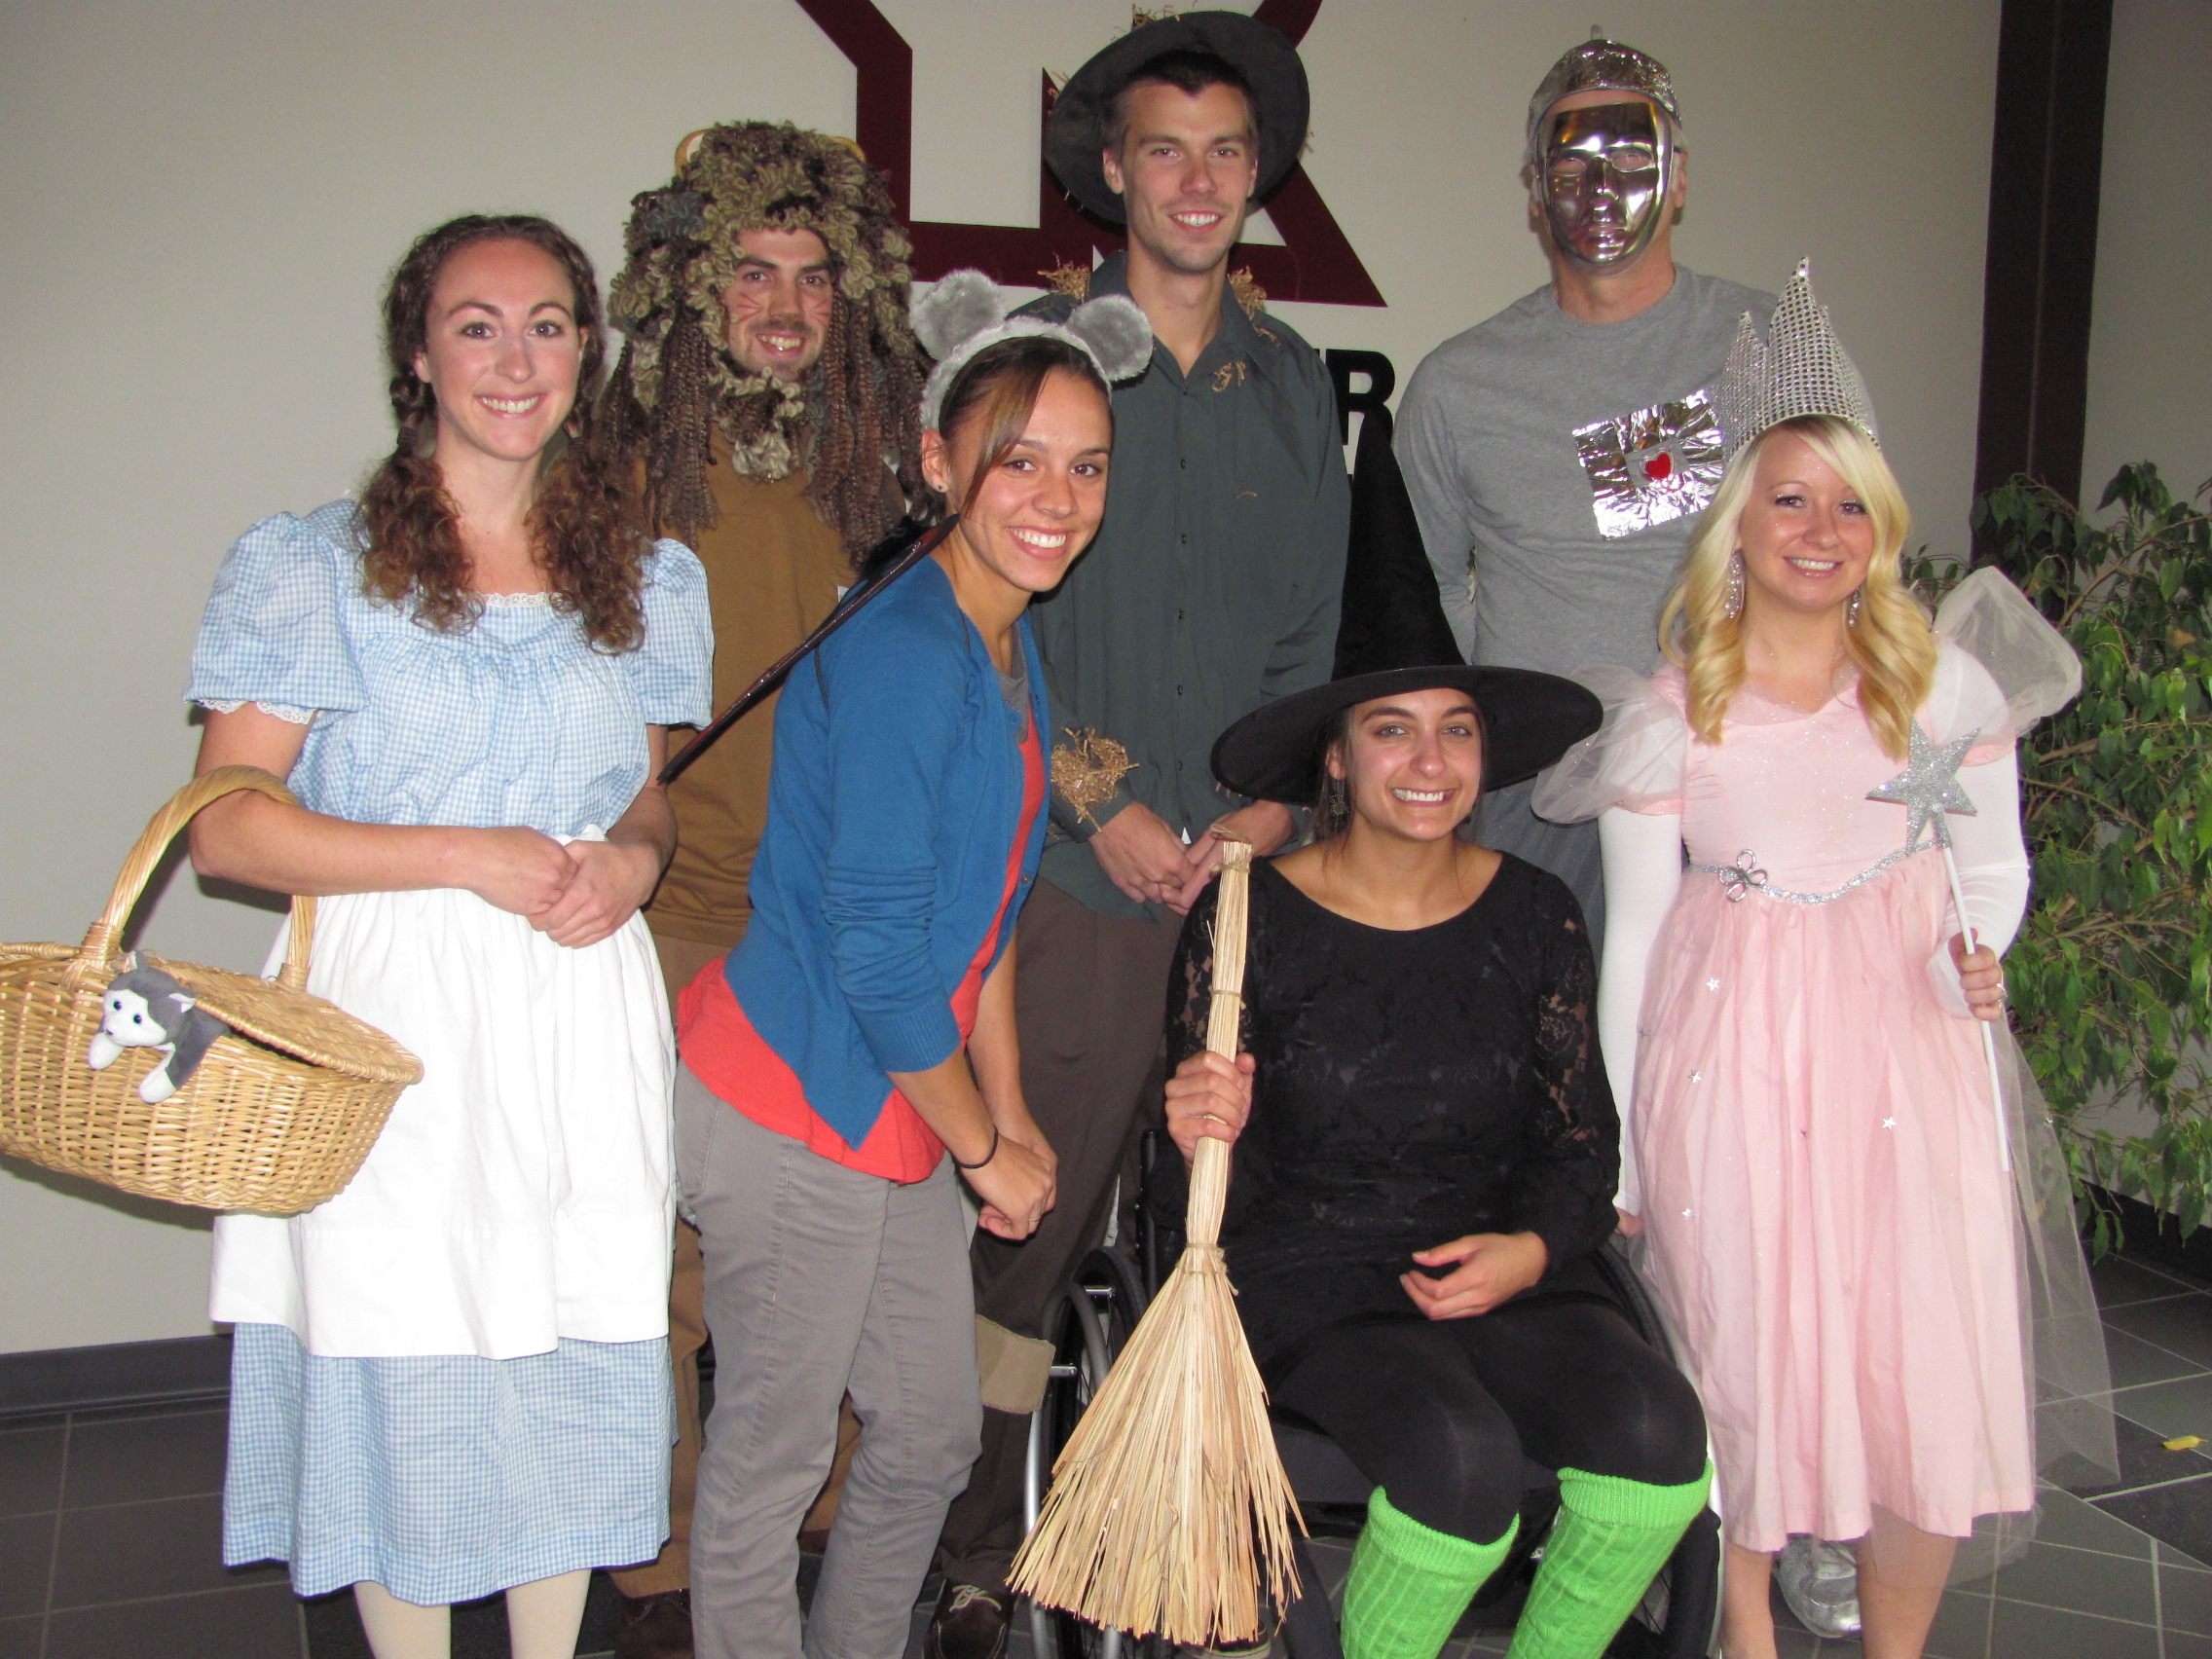 Employees dressed up as people from The Wizard of Oz for Halloween